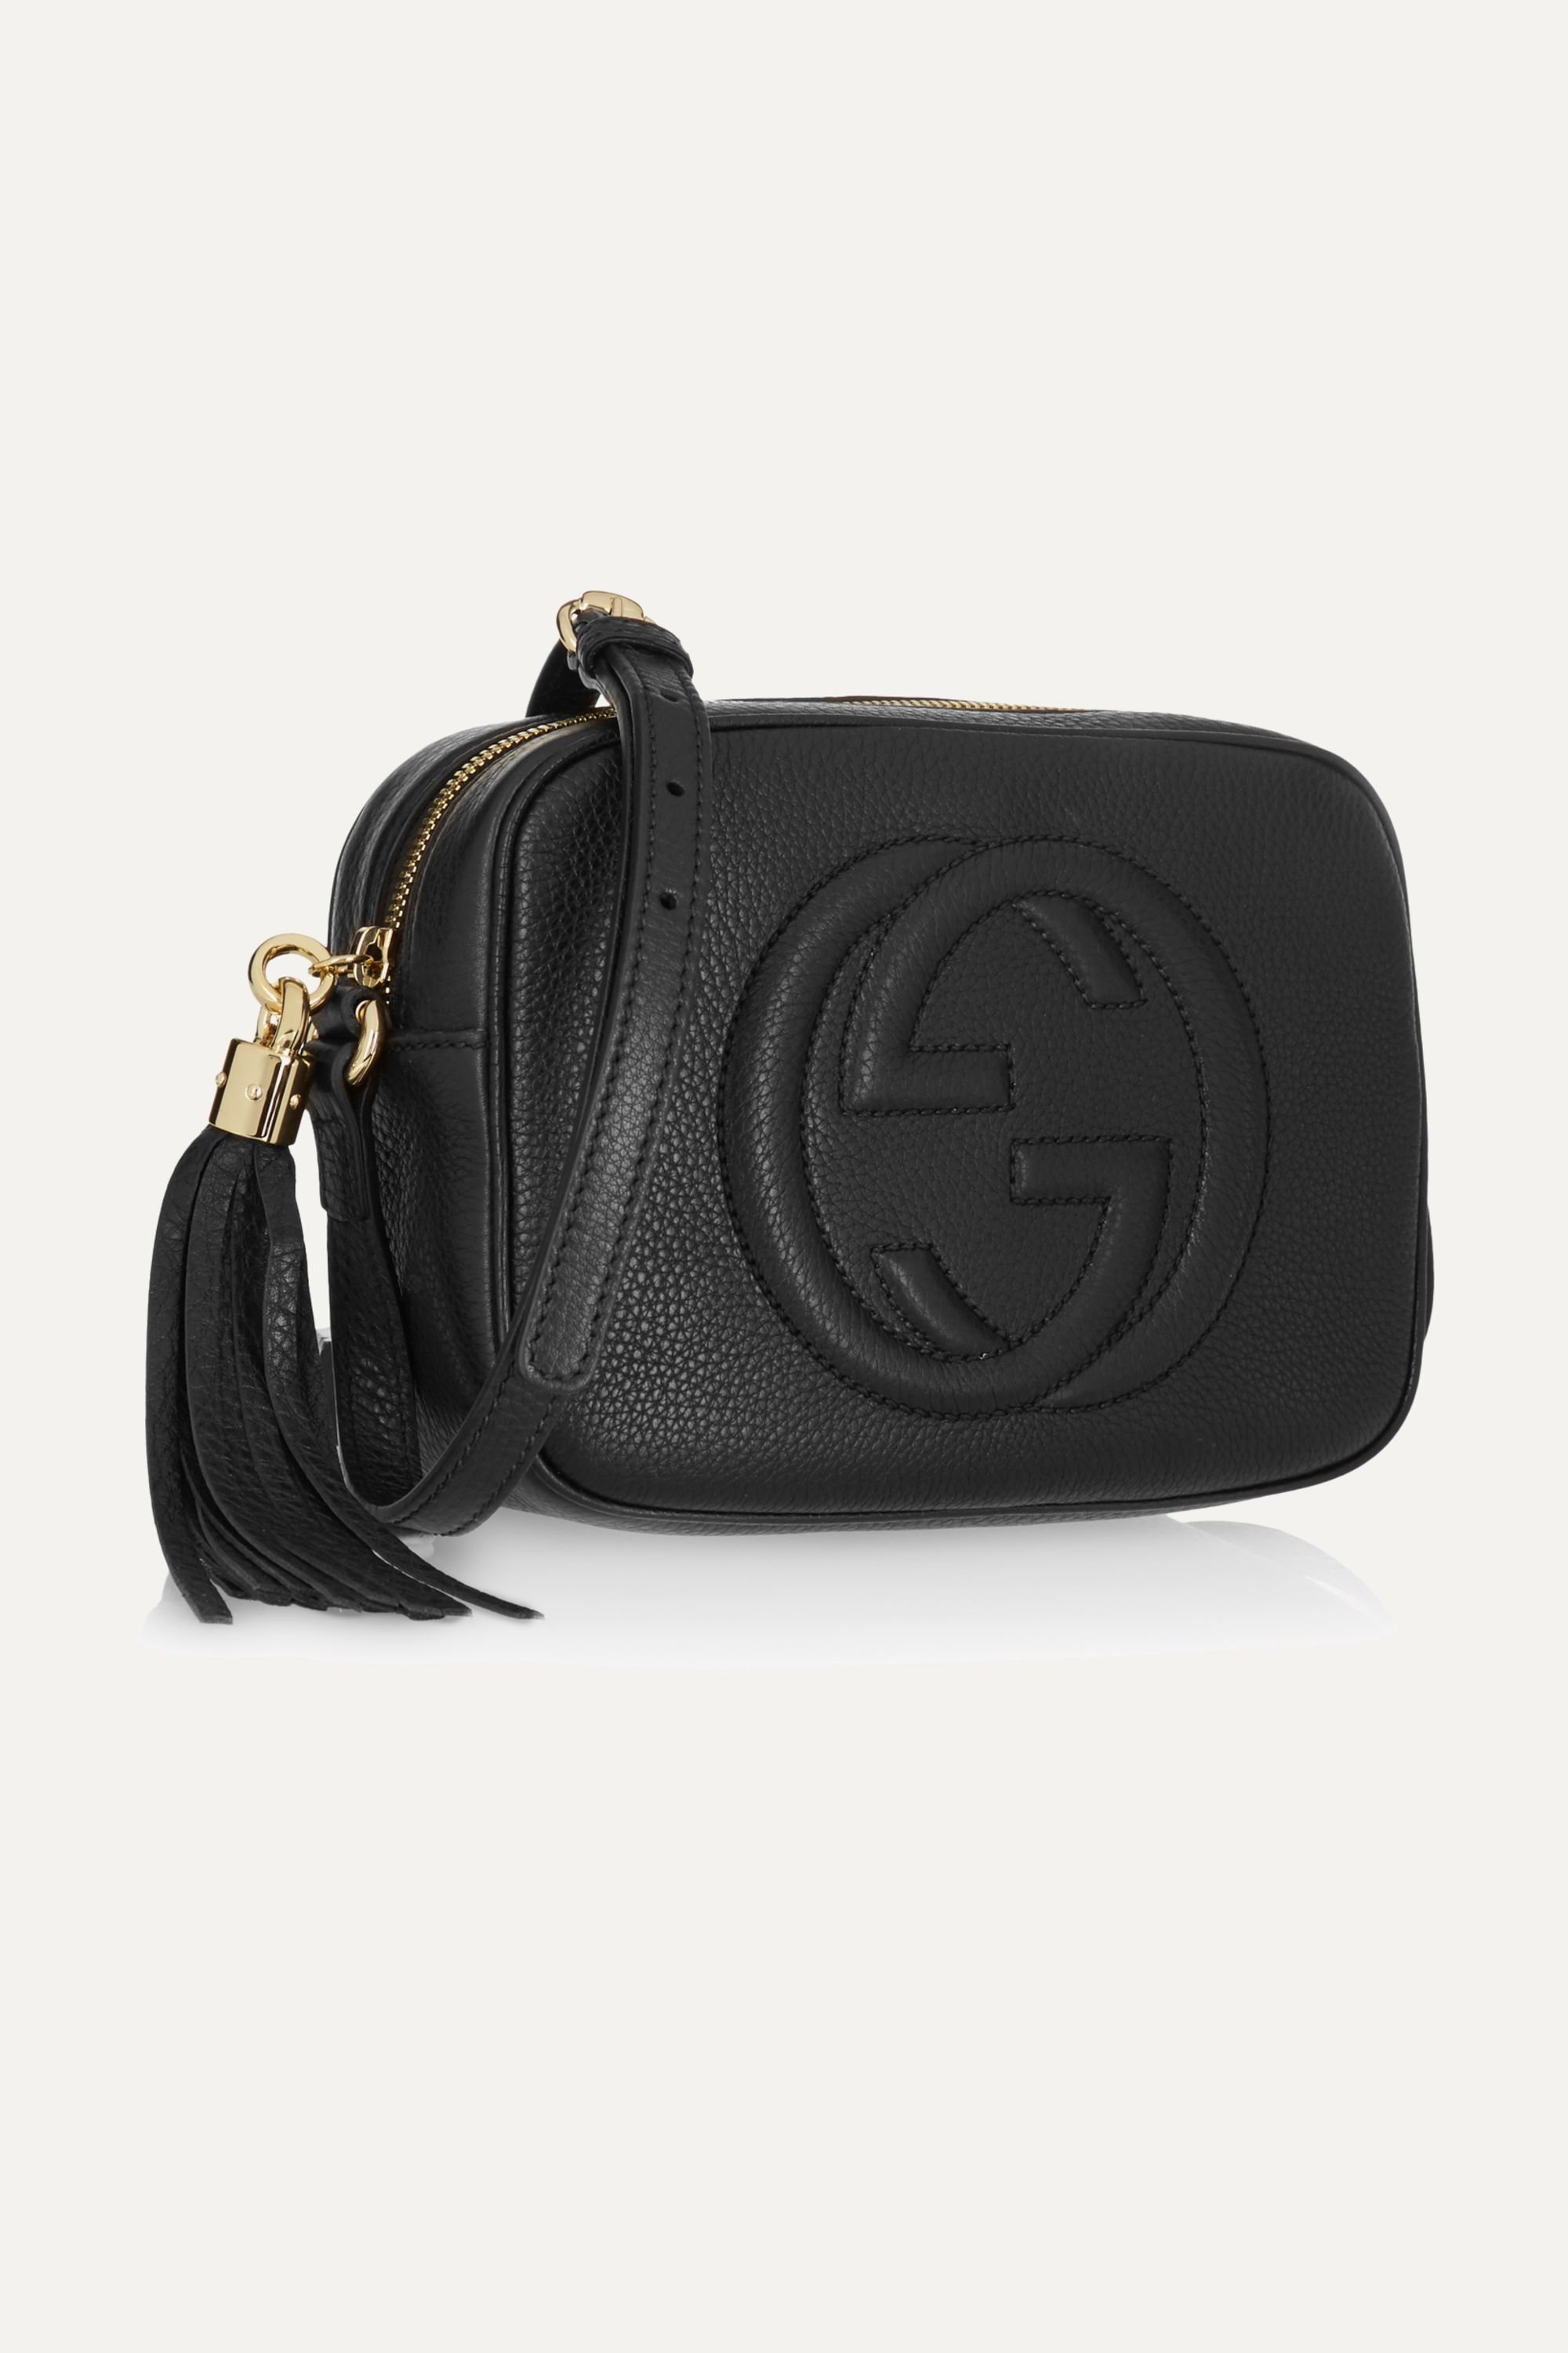 Gucci Soho Disco textured-leather shoulder bag